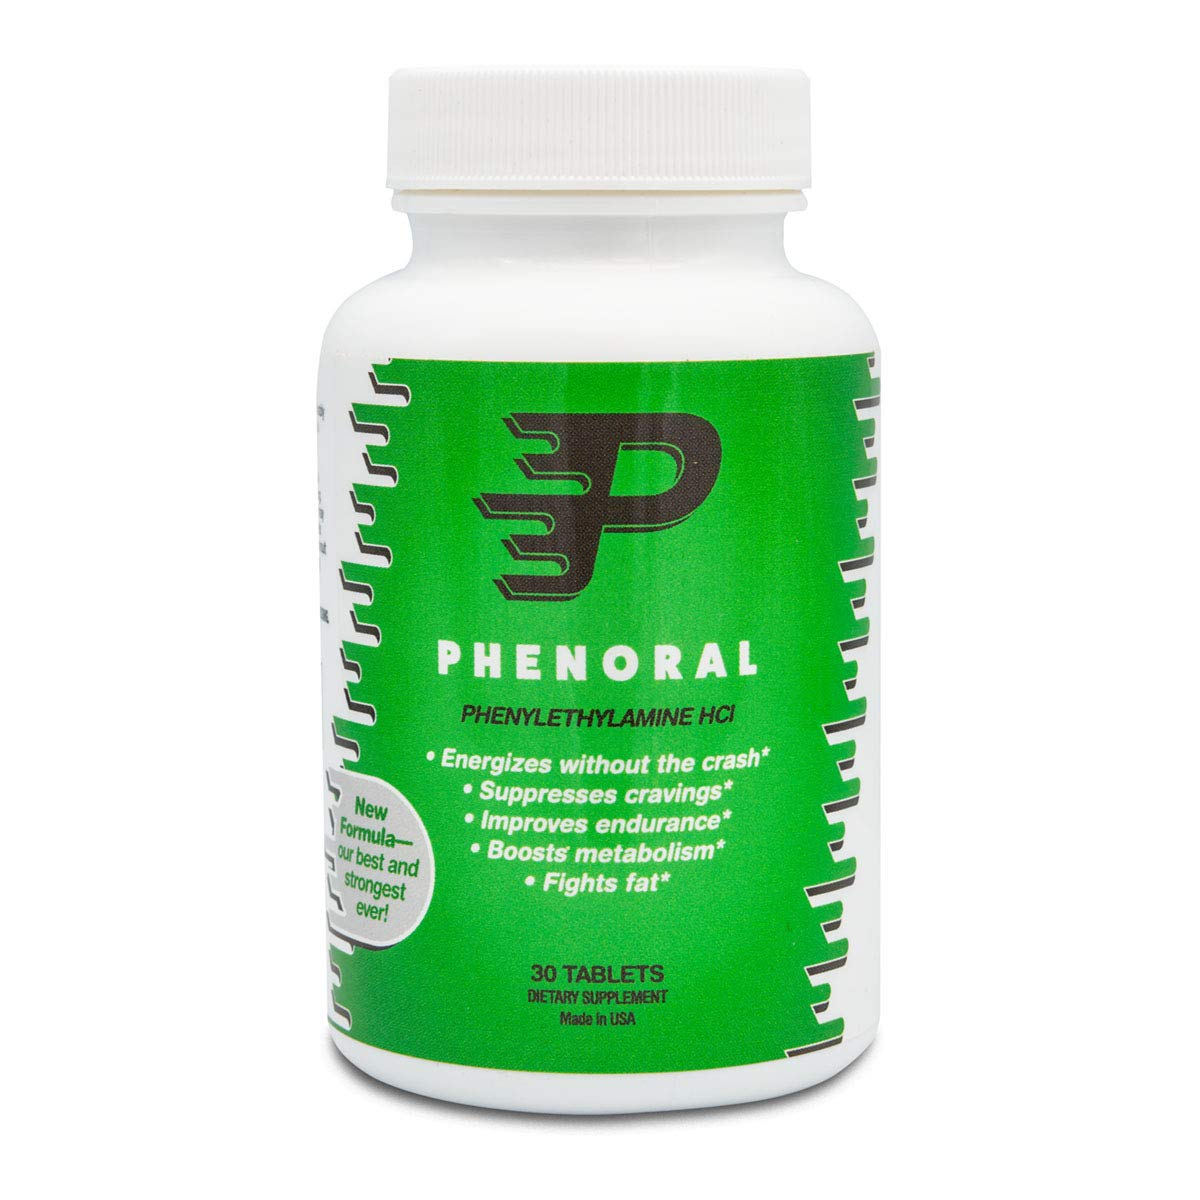 Phenoral Weight Loss Diet Pill - Appetite Suppressant and Energy - Boost Your Metabolism While Eating Less by Phenoral